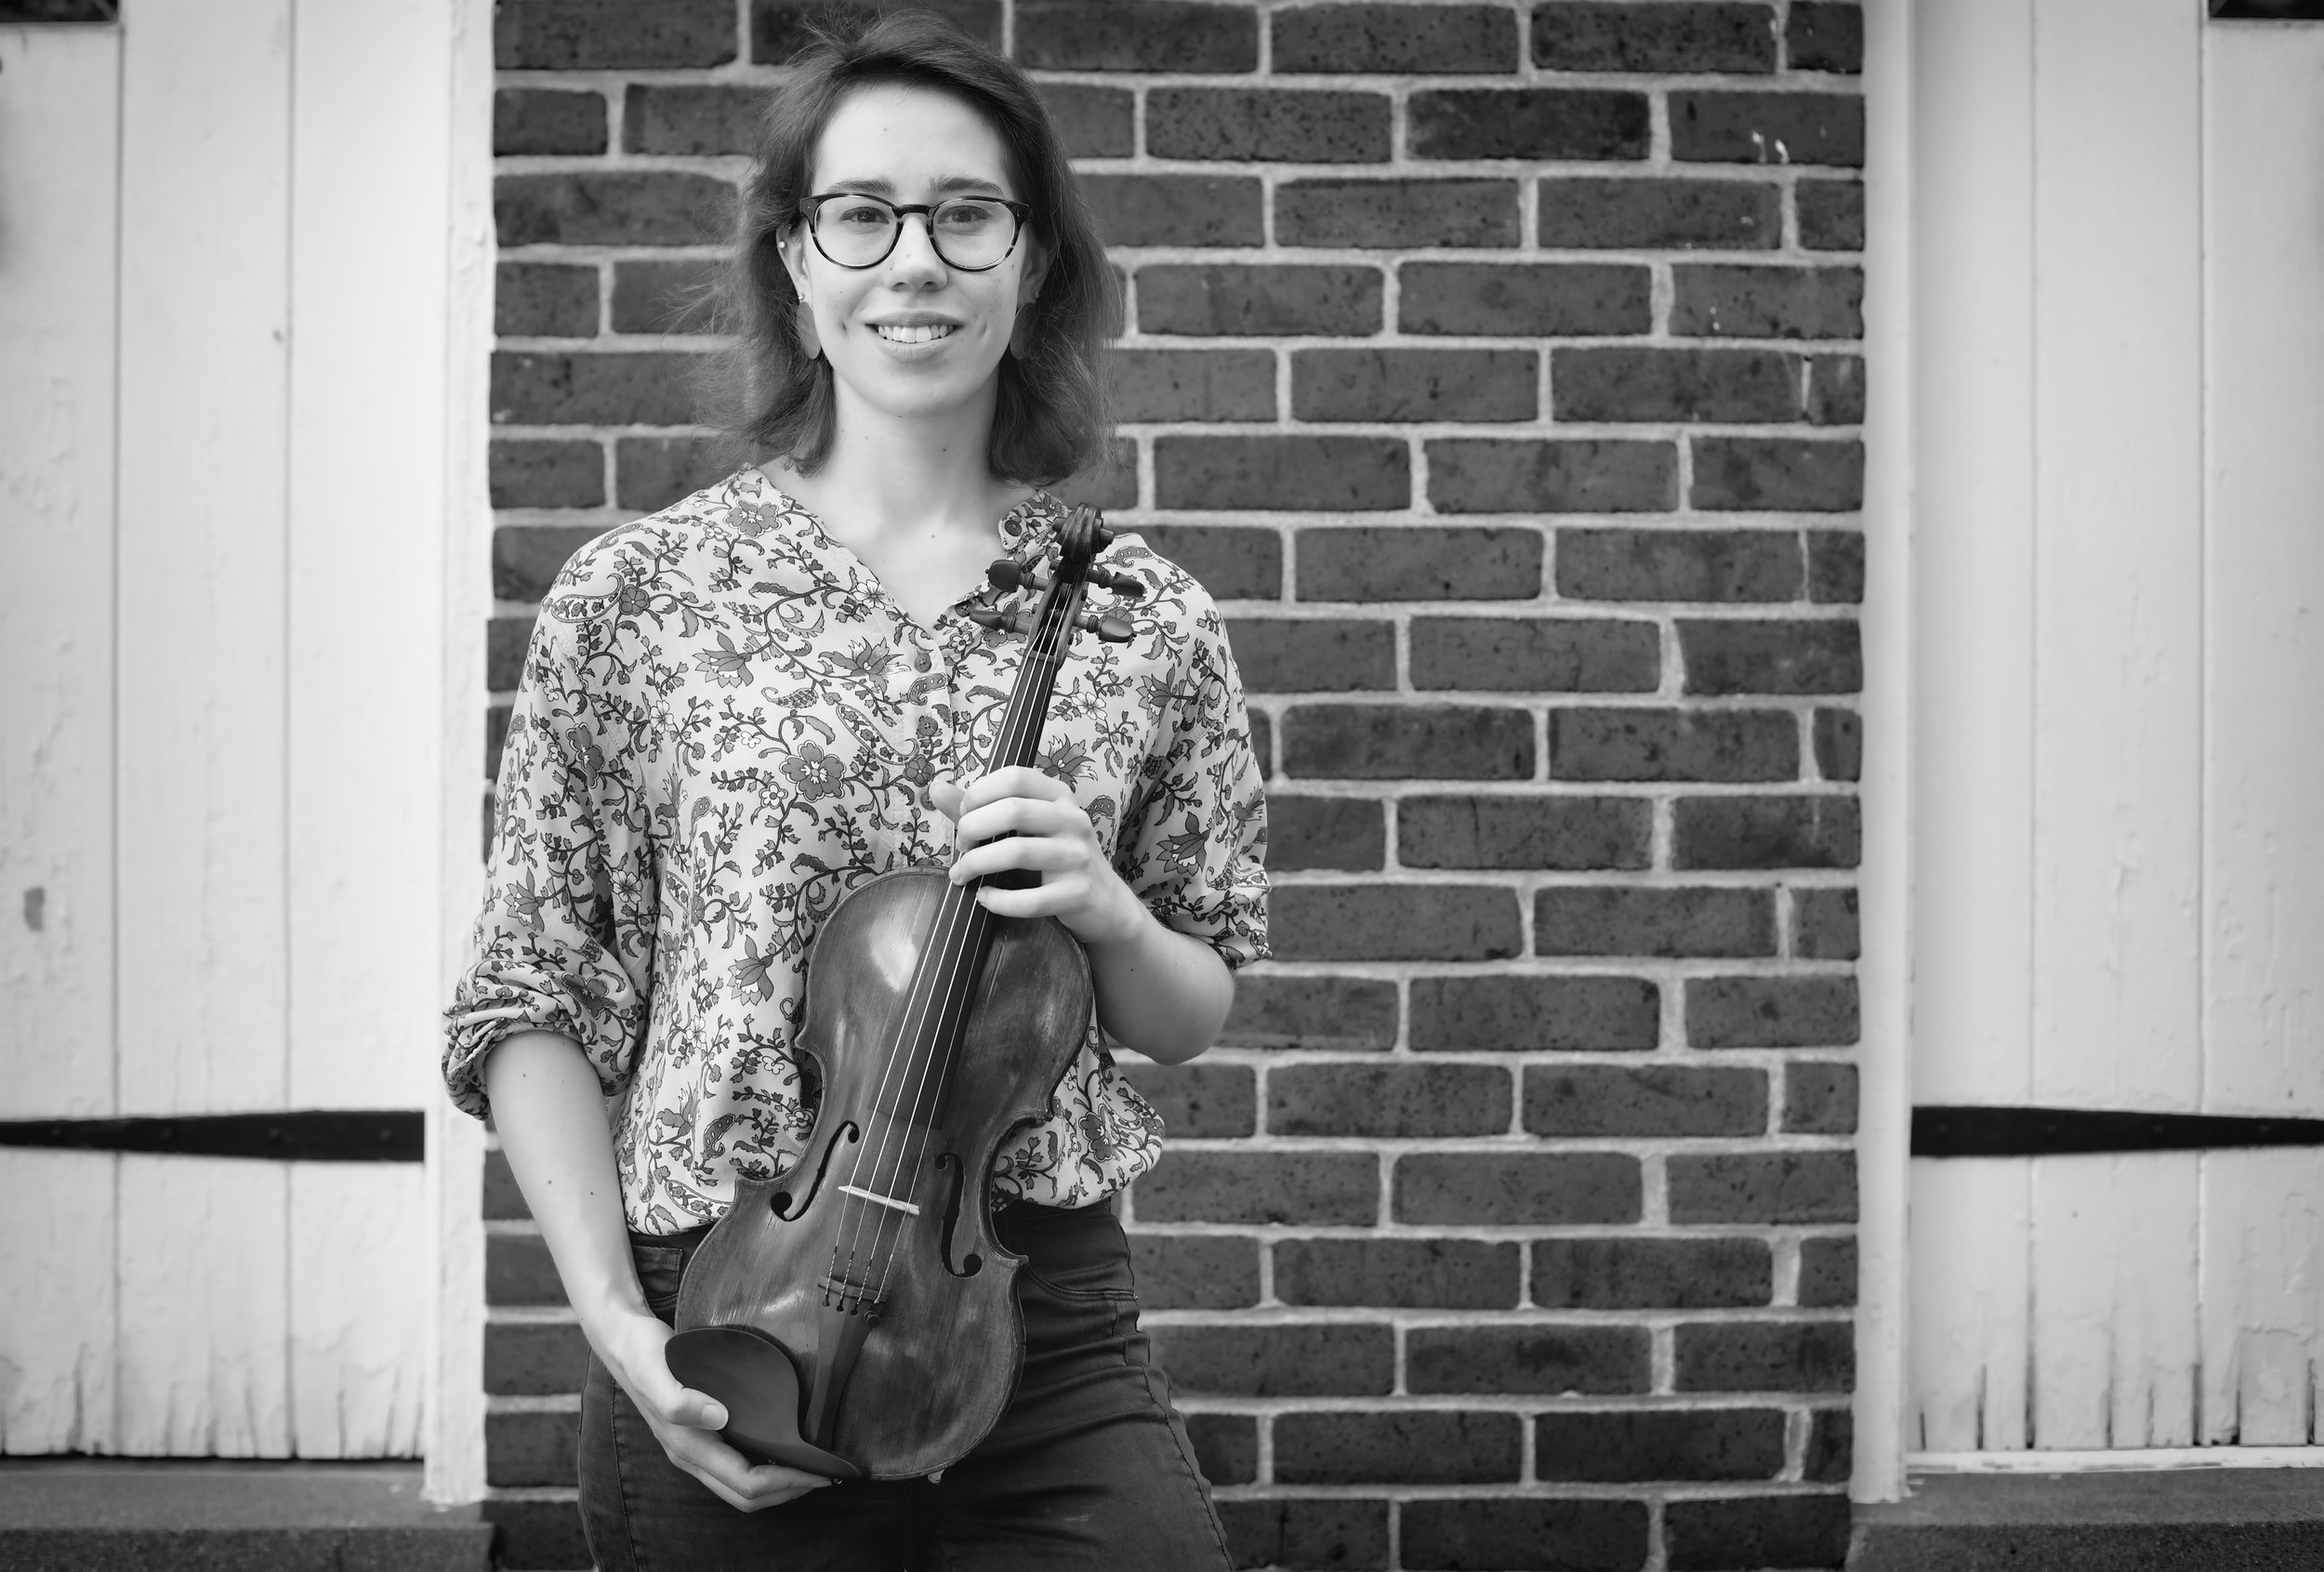 Sarah COle: Violin - Sarah Cole holds Masters Degrees in both violin performance and string pedagogy. She has studied at the University of Louisville, the Royal Welsh College of Music and Drama in Wales, and at Baldwin Wallace Conservatory in Ohio. She currently plays with Orchestra Kentucky and Paducah Symphony, as well as freelancing in the Louisville area. While at U of L, she served as Concertmaster in the university's orchestra. She also performed in the university's Graduate String Quartet and worked as a Teaching Assistant there. In London, Sarah's chamber ensemble was a finalist for the Cavatina Chamber Music Competition at the Royal Academy of Music. Also in Britain, while as a member of the Royal Welsh String Soloists Ensemble, she was invited to Buckingham Palace to perform at a gala for Prince Charles.In Louisville, Sarah gives recitals and regularly performs with other local musicians. Sarah has performed in master classes for notable musicians such as Simon Fisher, ItzhakRashkovsky, and Daniel Phillips, and recently studied with David Updegraff, Patrick Rafferty, and Rachel Podger. In her spare time, Sarah enjoys hiking, traveling, and drinking coffee.